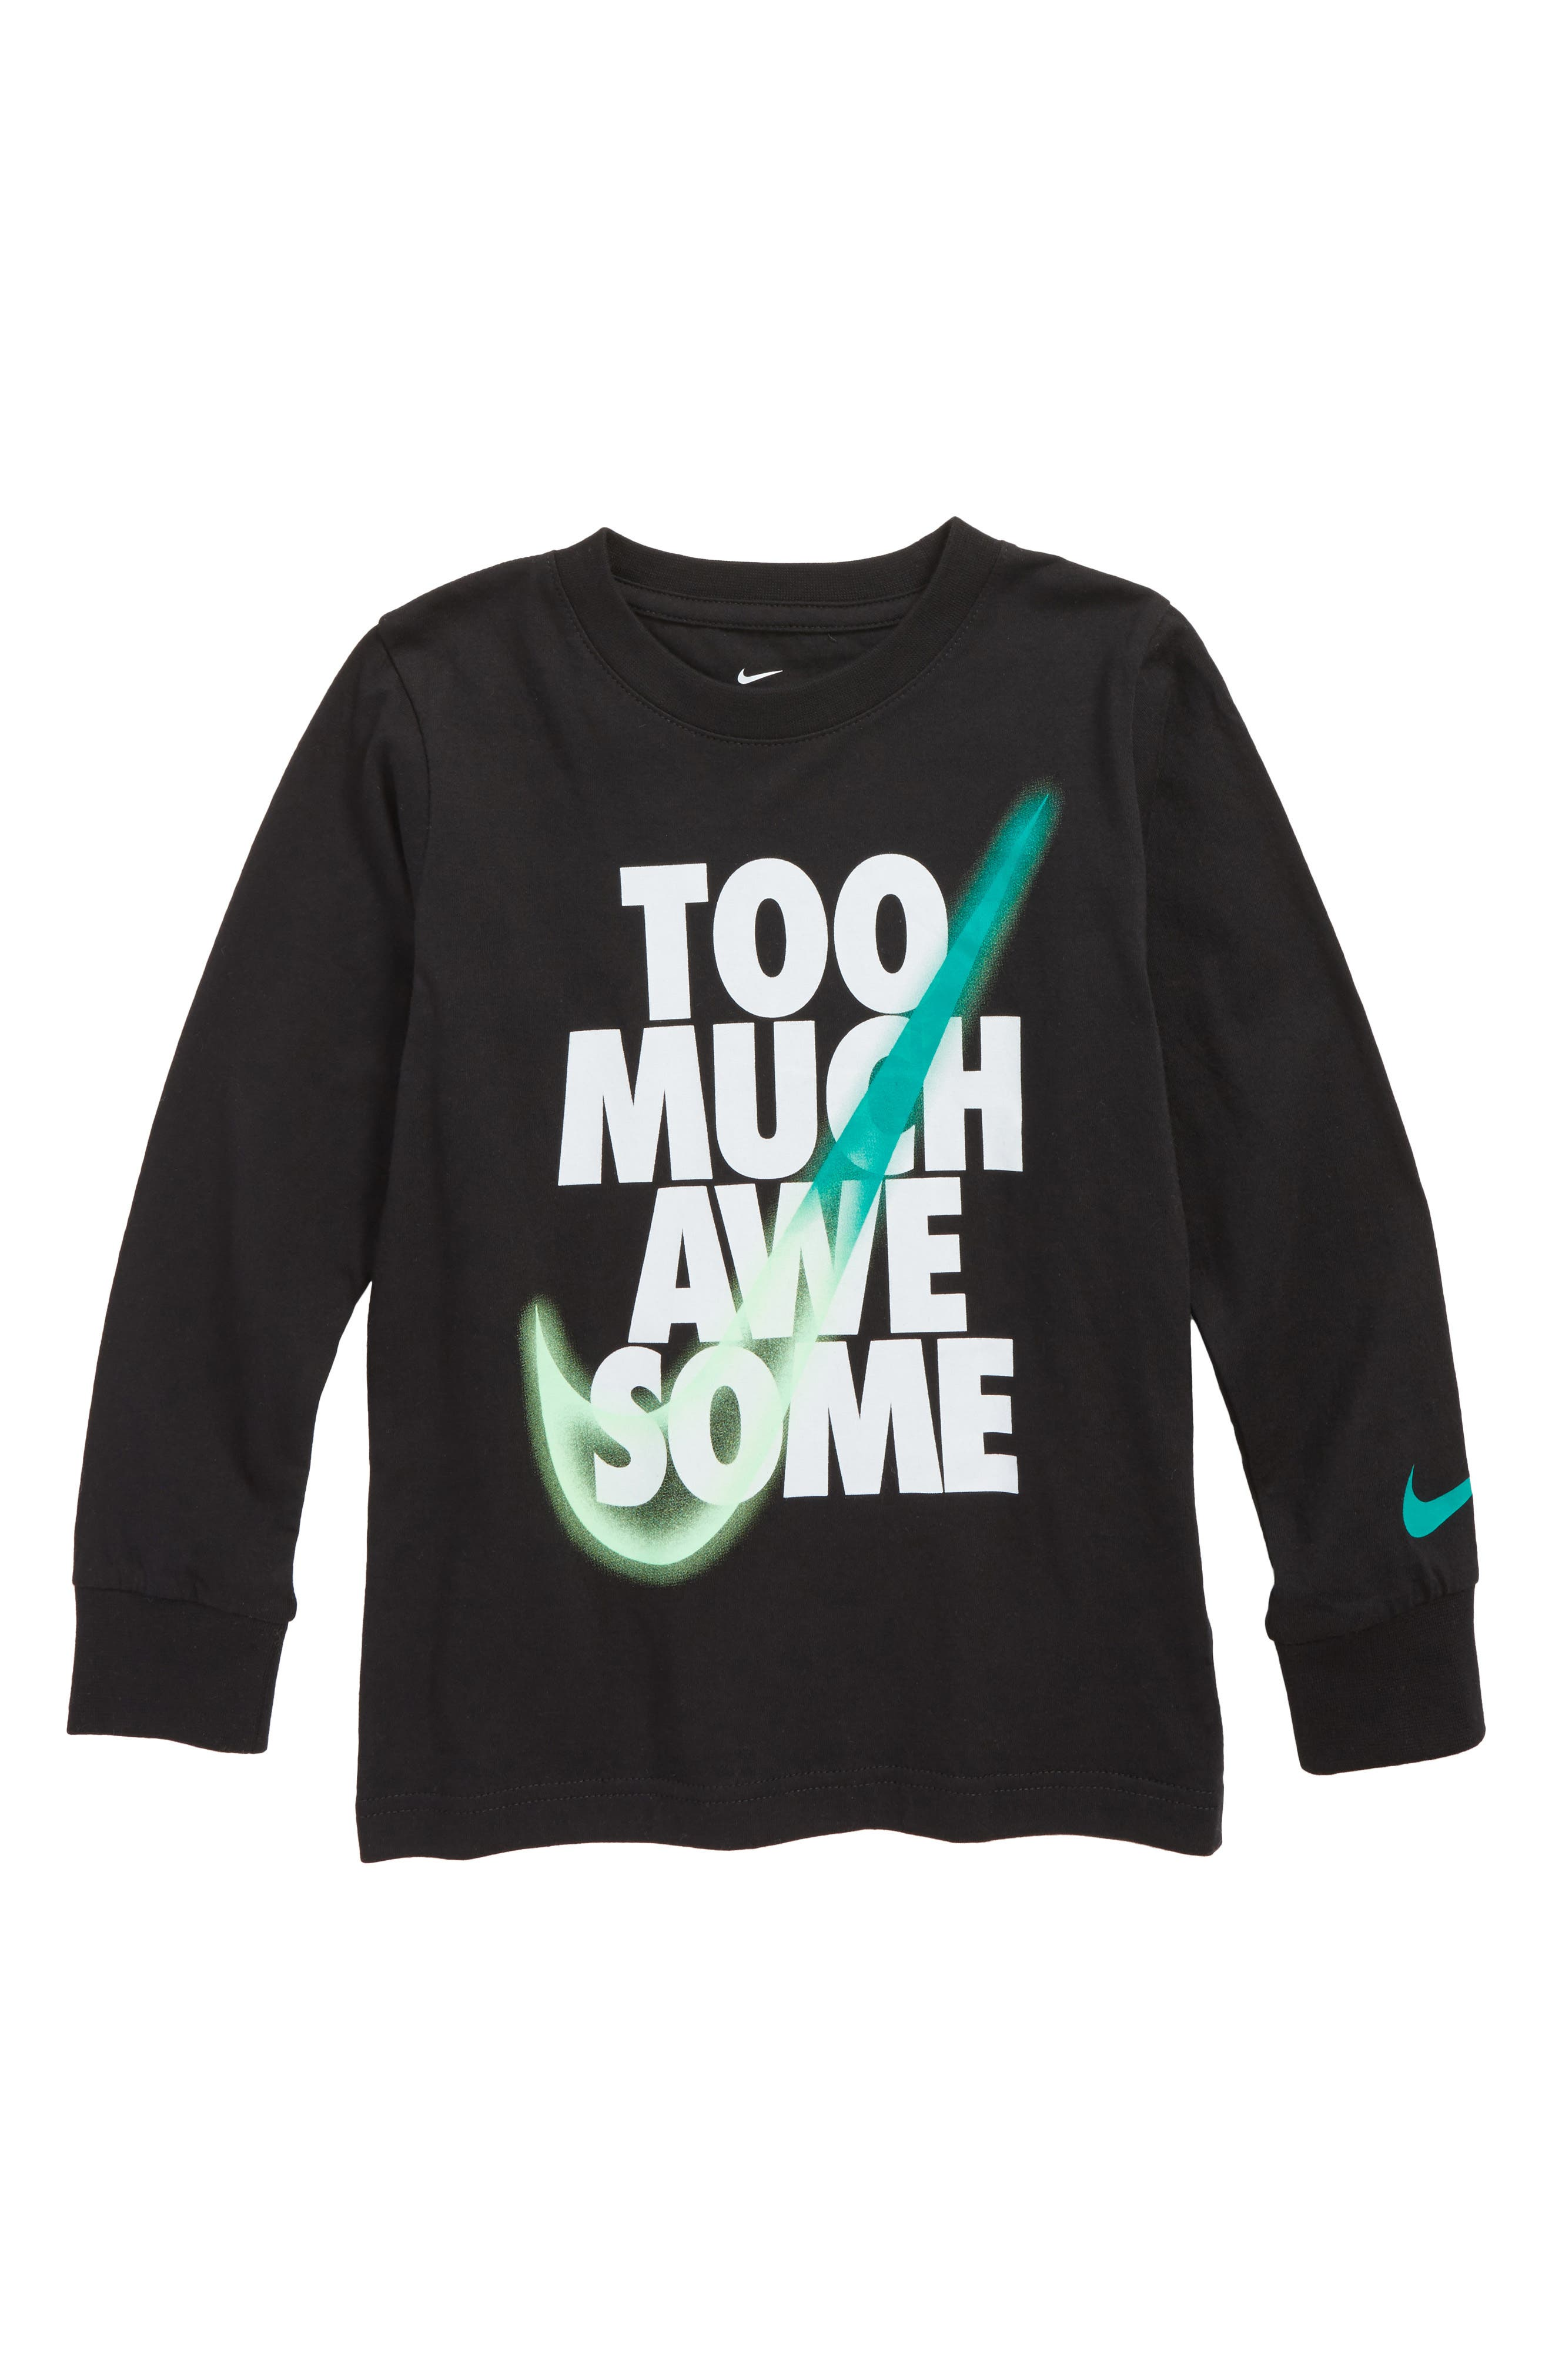 Main Image - Nike Too Much Awesome Graphic T-Shirt (Toddler Boys & Little Boys)